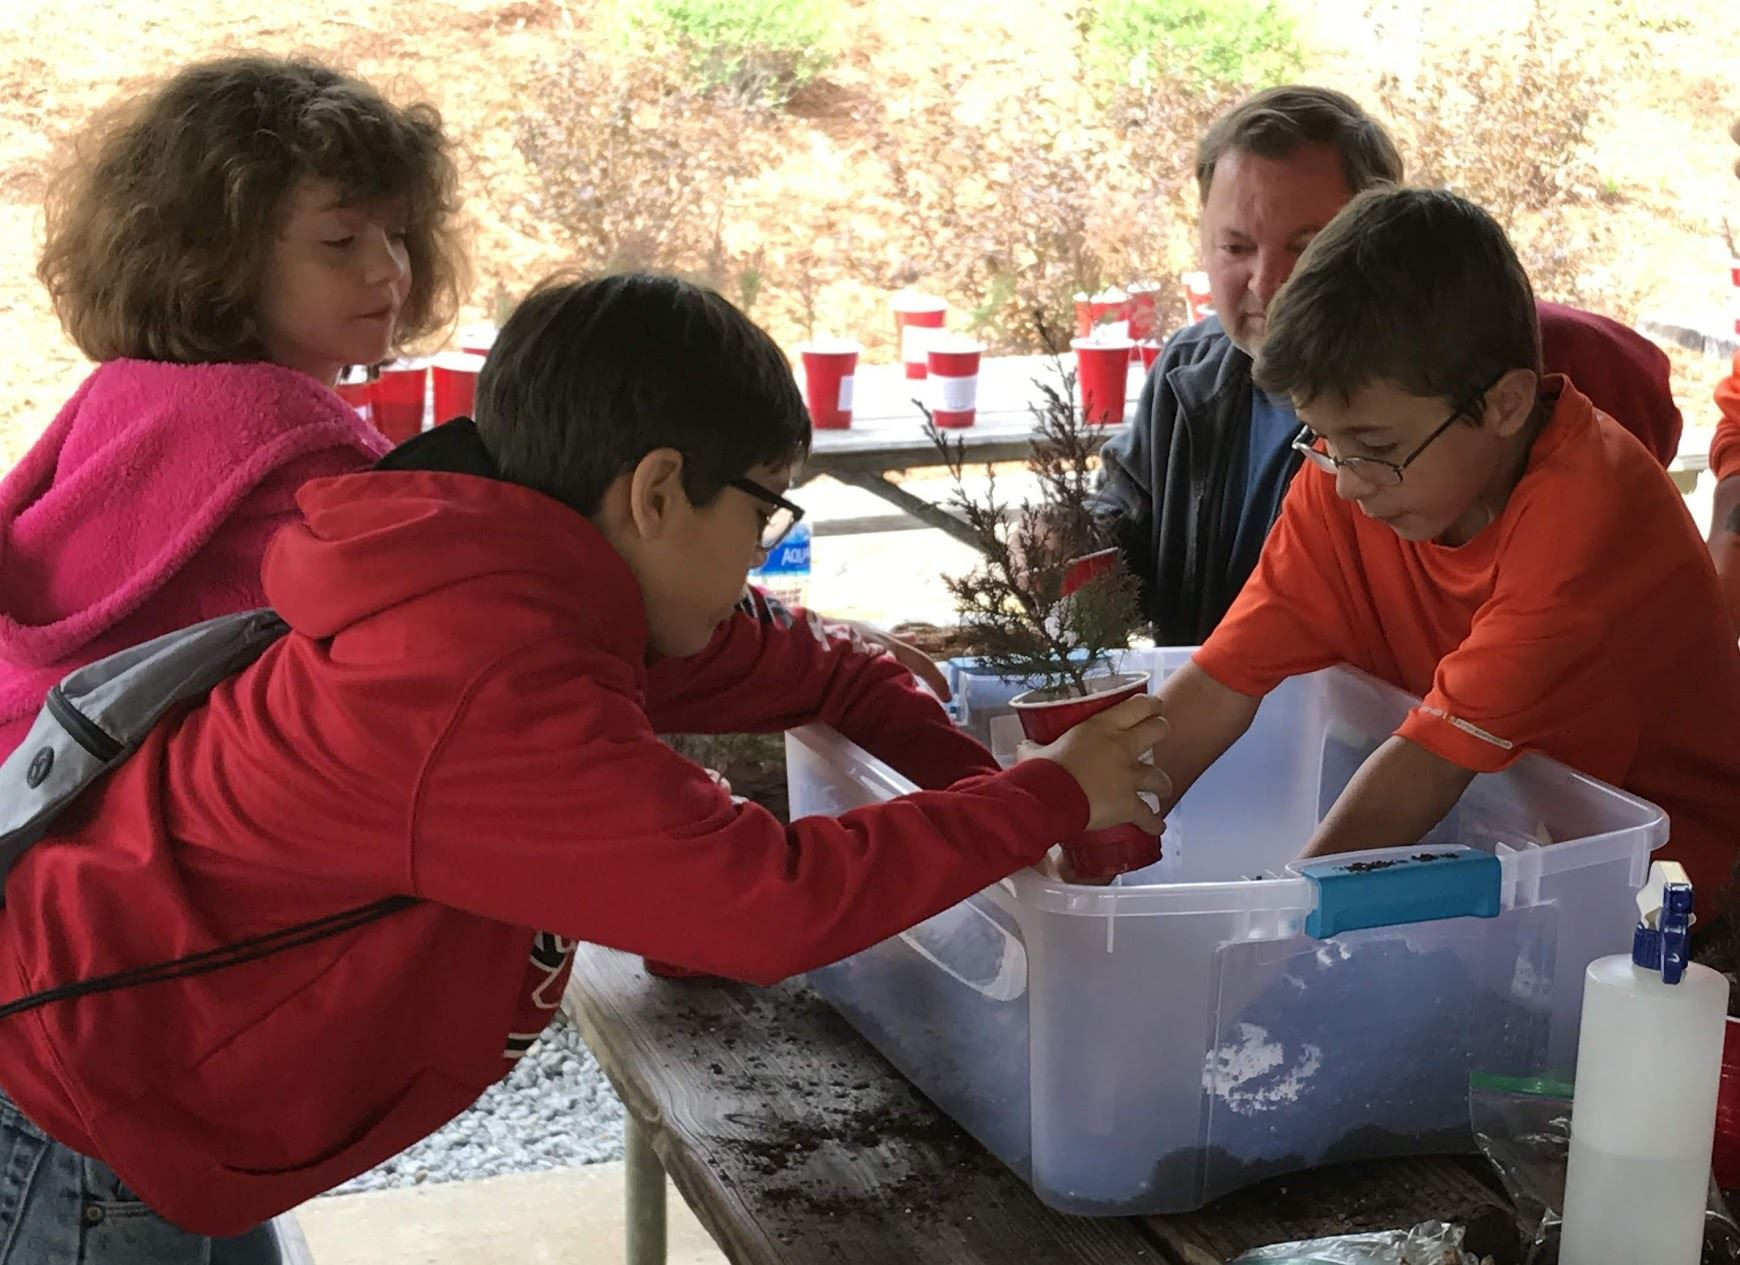 three students surrounding a clear storage bin filled with soil. female student is wearing a pink sweatshirt and two male students are wearing red. one students has a tree selling in a red soil cup and is filling it with soil. bin is on a picnic table. adult male in the background in grey zip up sweatshirt.